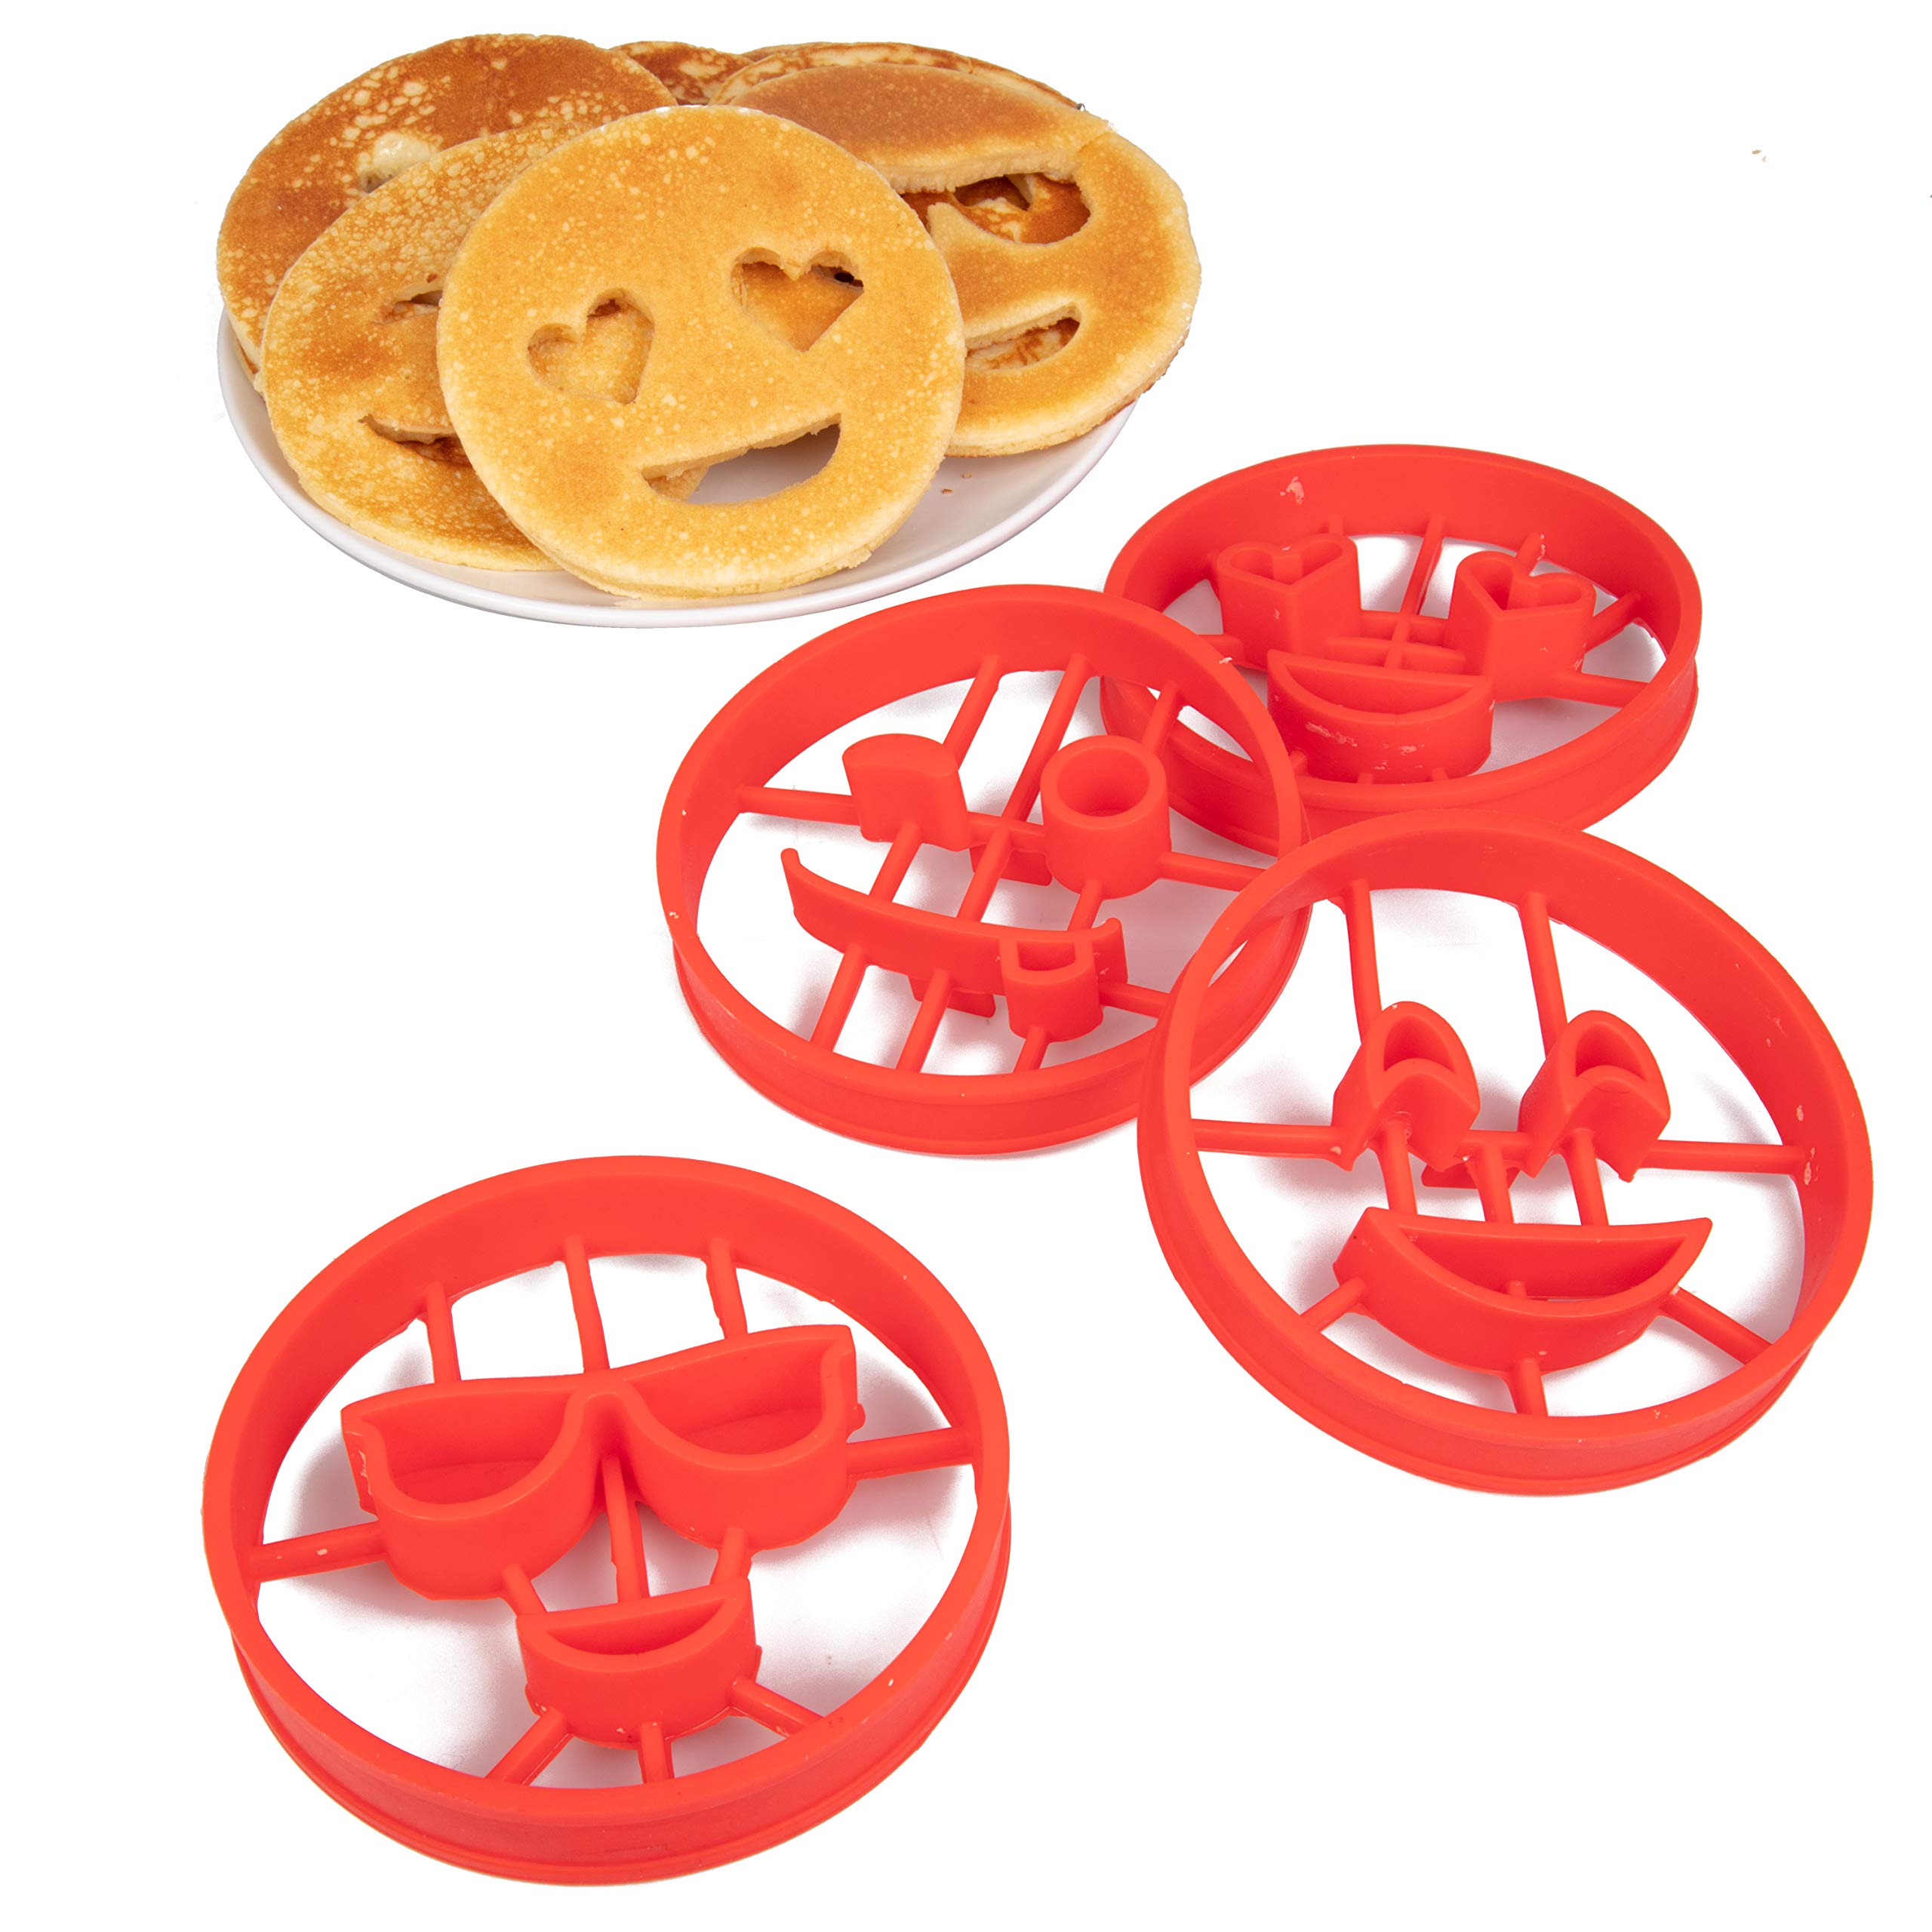 Emoji Pancake Molds and Egg Rings (4 Pack) for Kids AND Adults - Reusable Silicone Smiley Face Maker Doubles as Cookie Maker Set- FDA Approved, BPA Free, Food Safe, Heat Resistant Silicone by Good Cooking (Image #6)